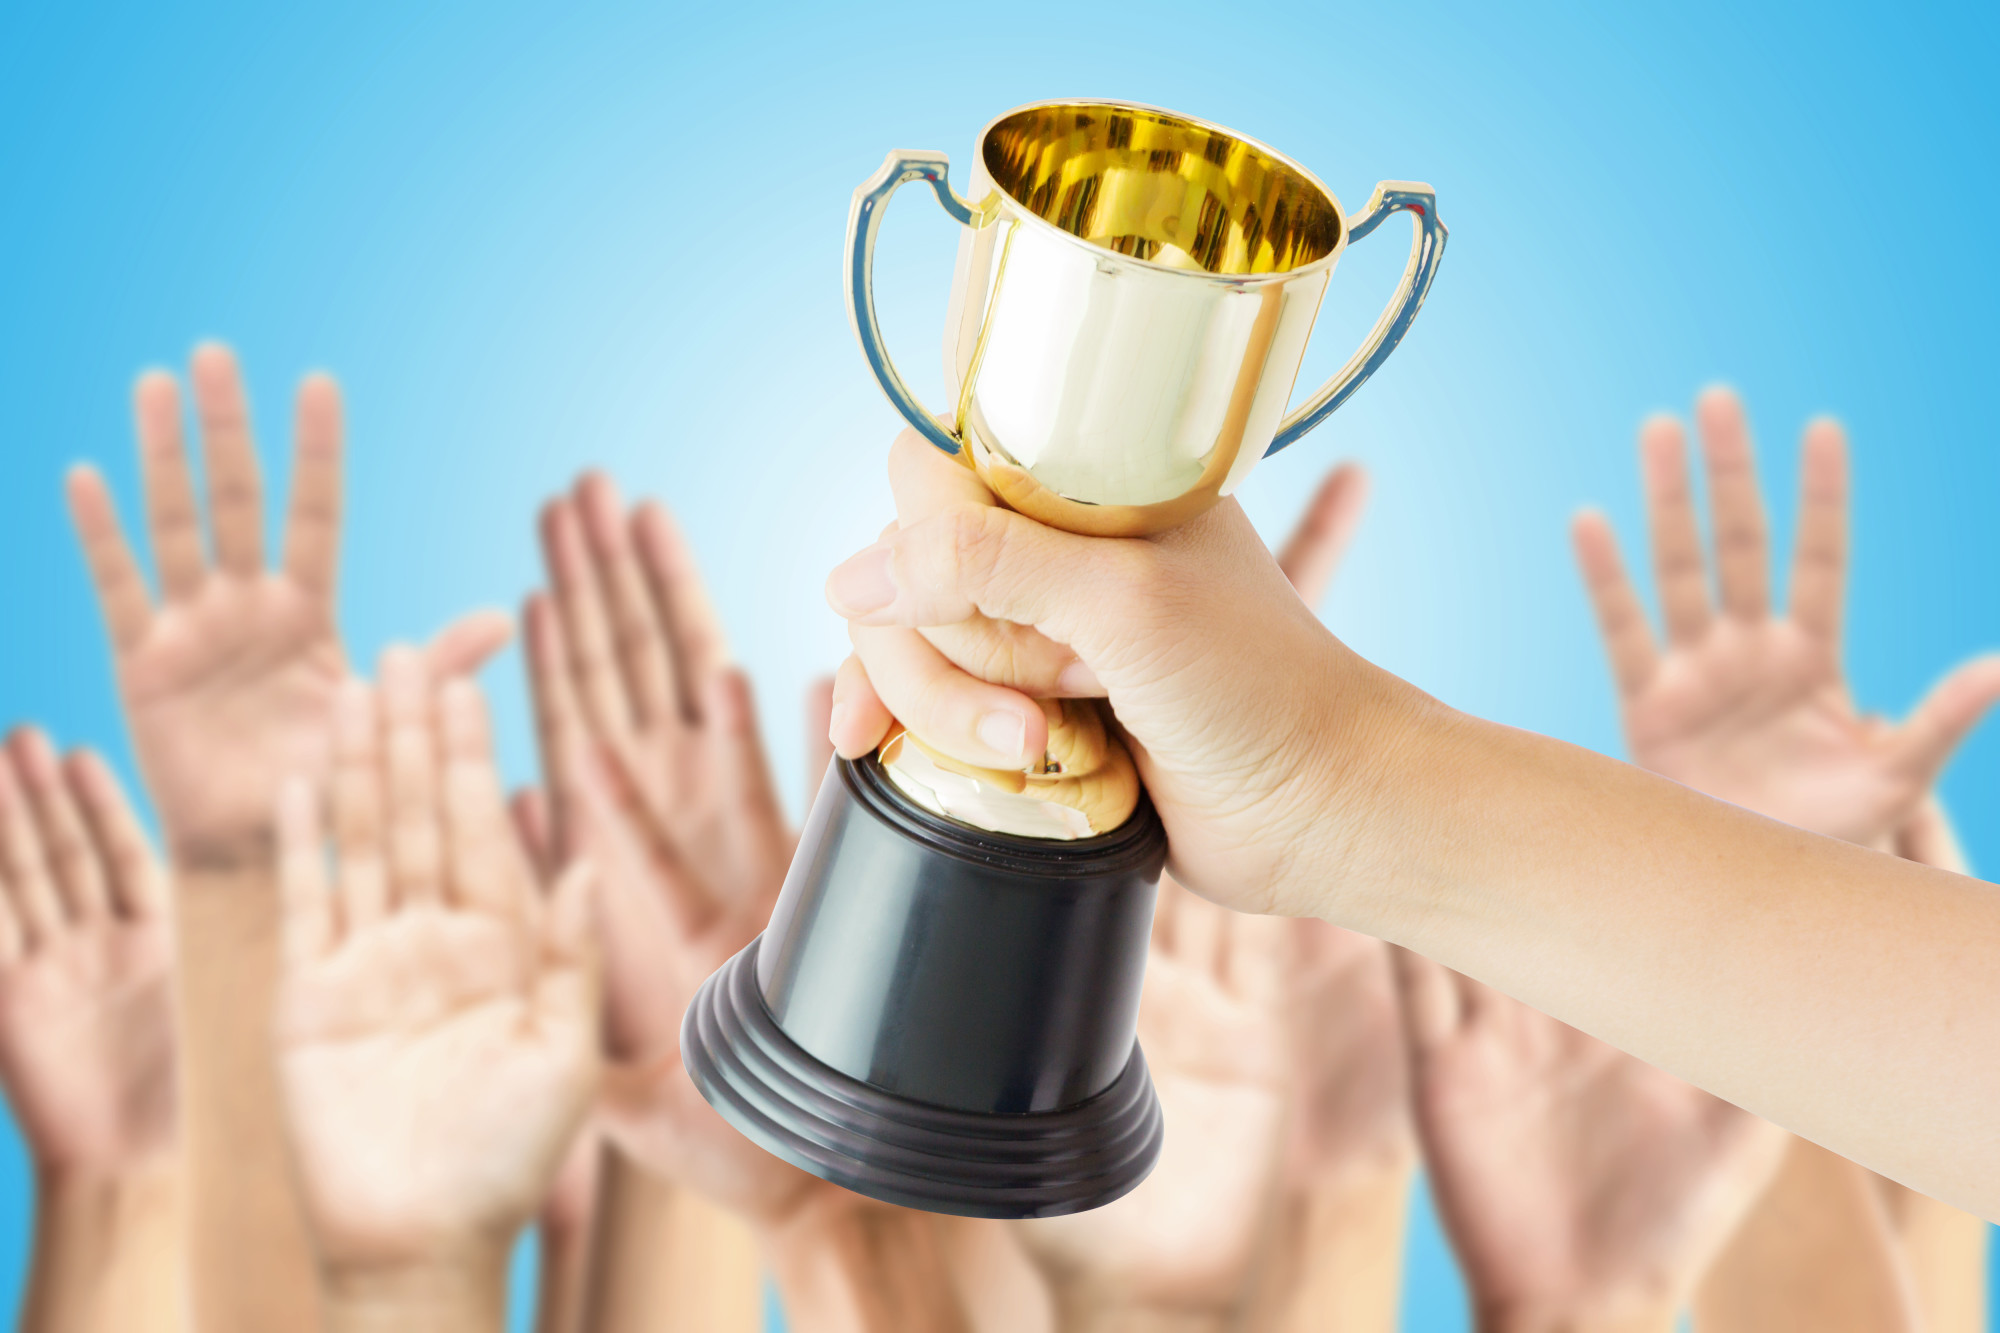 The Participation Trophy Debate: Should We Give Our Kids Participation Trophies?